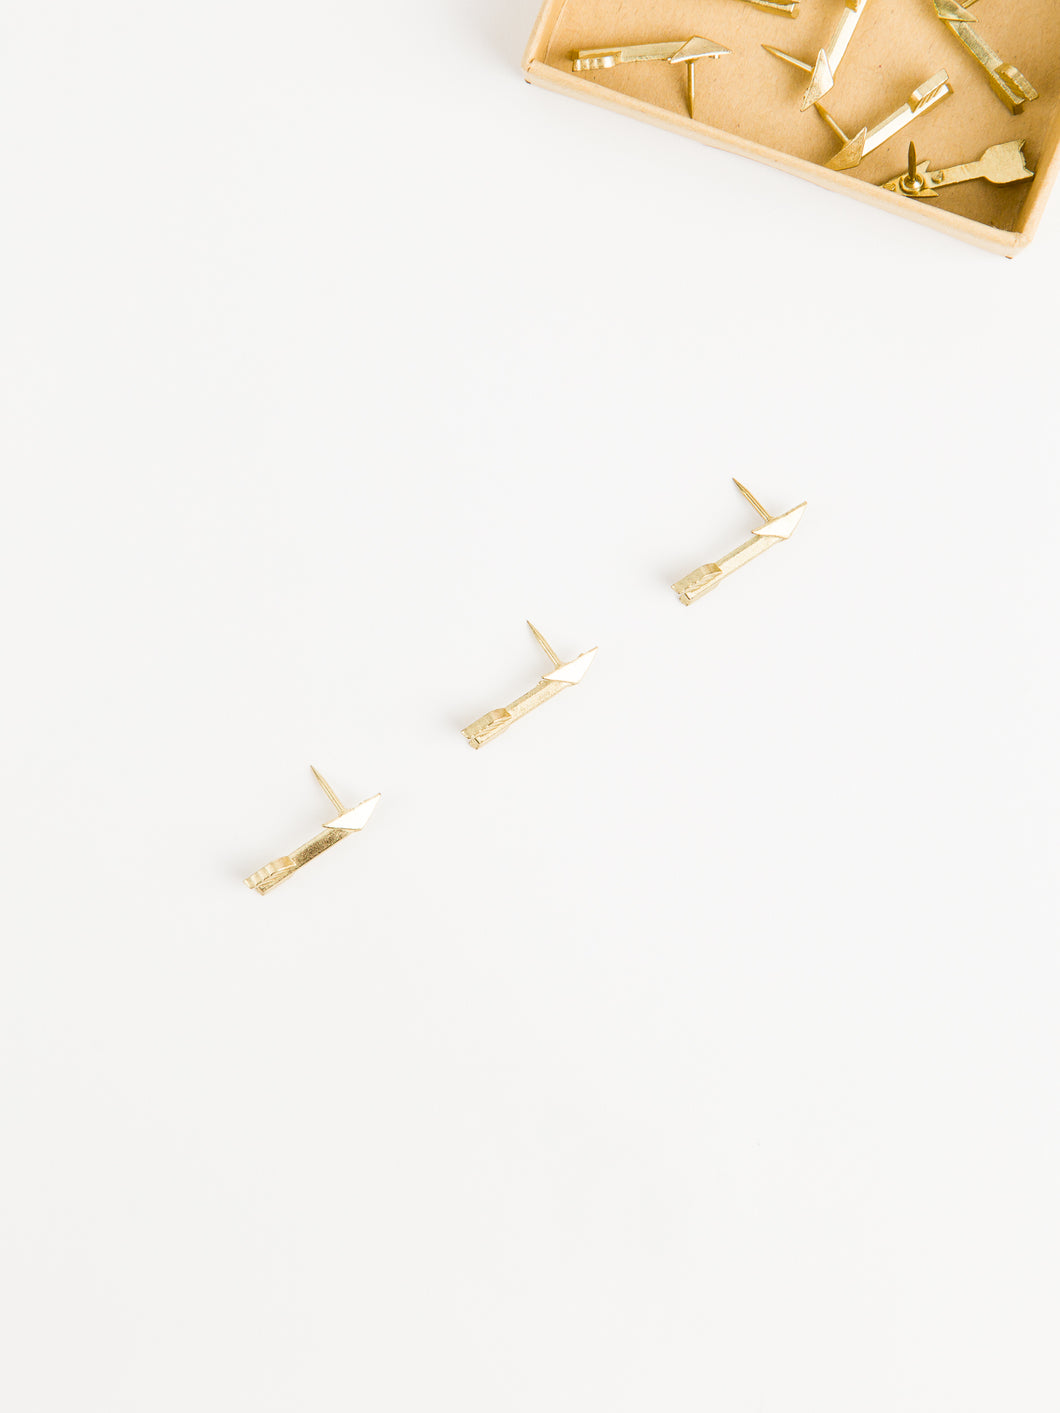 Gold Arrow Push Pins, Set of 9